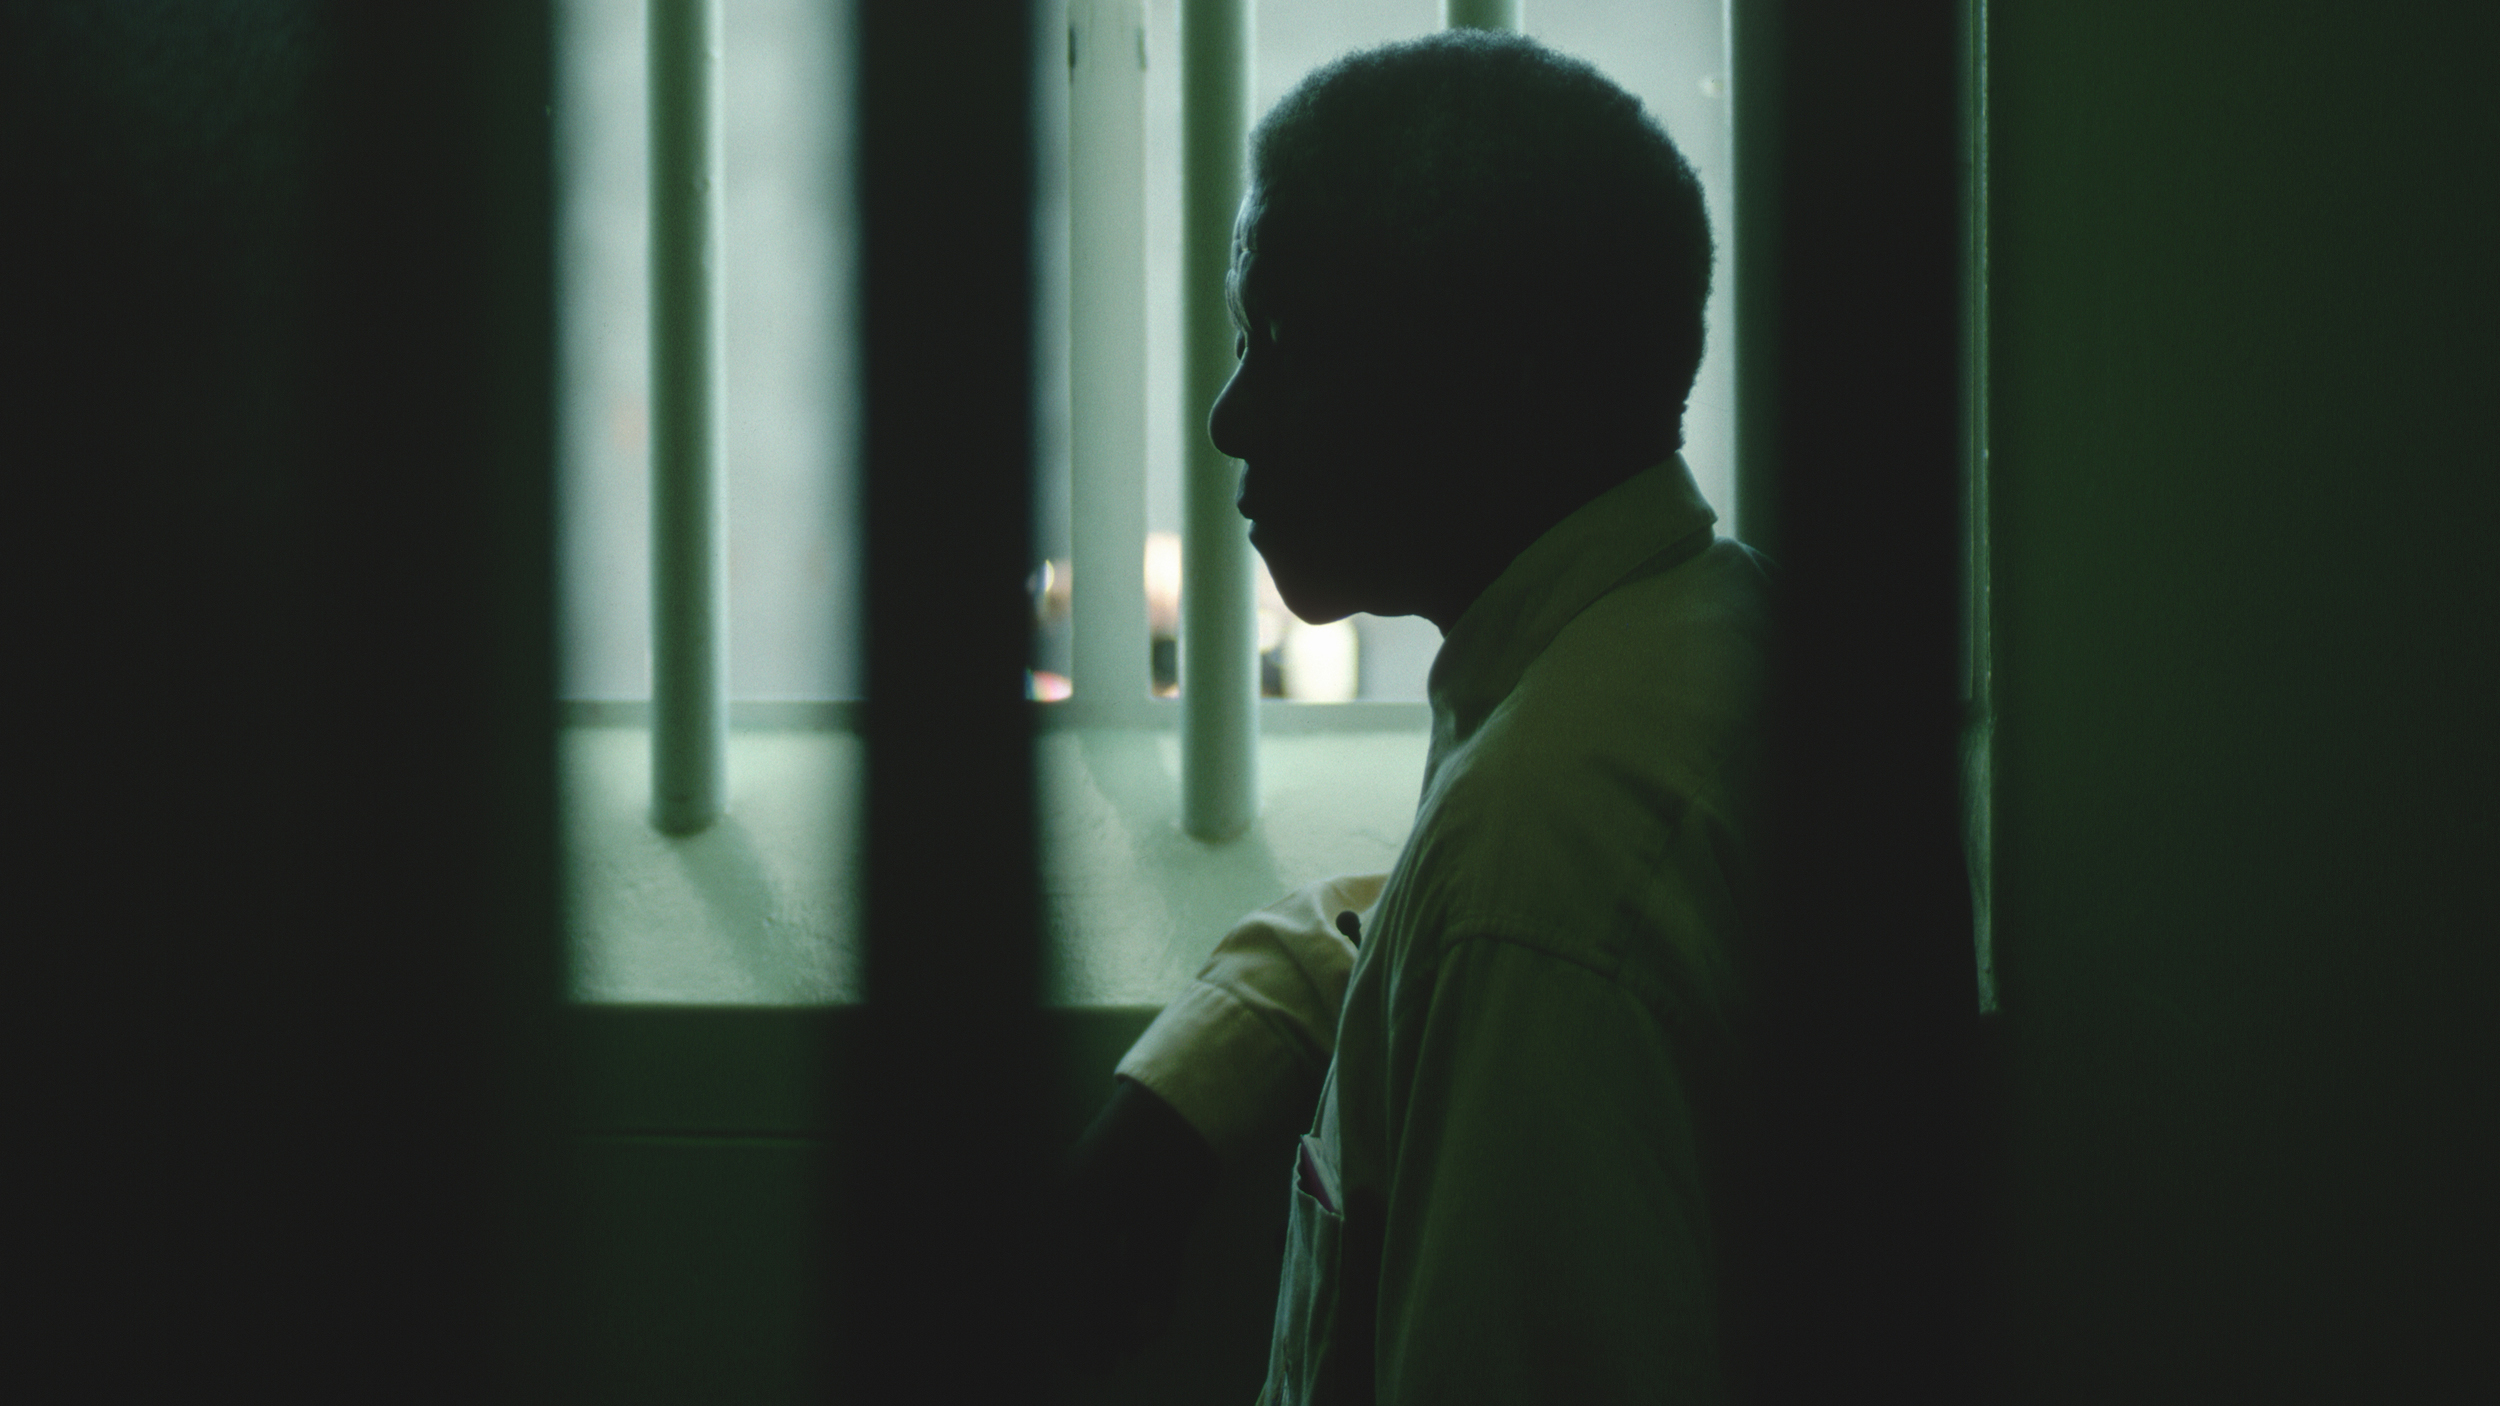 Nelson Mandela Revisiting His Jail Cell